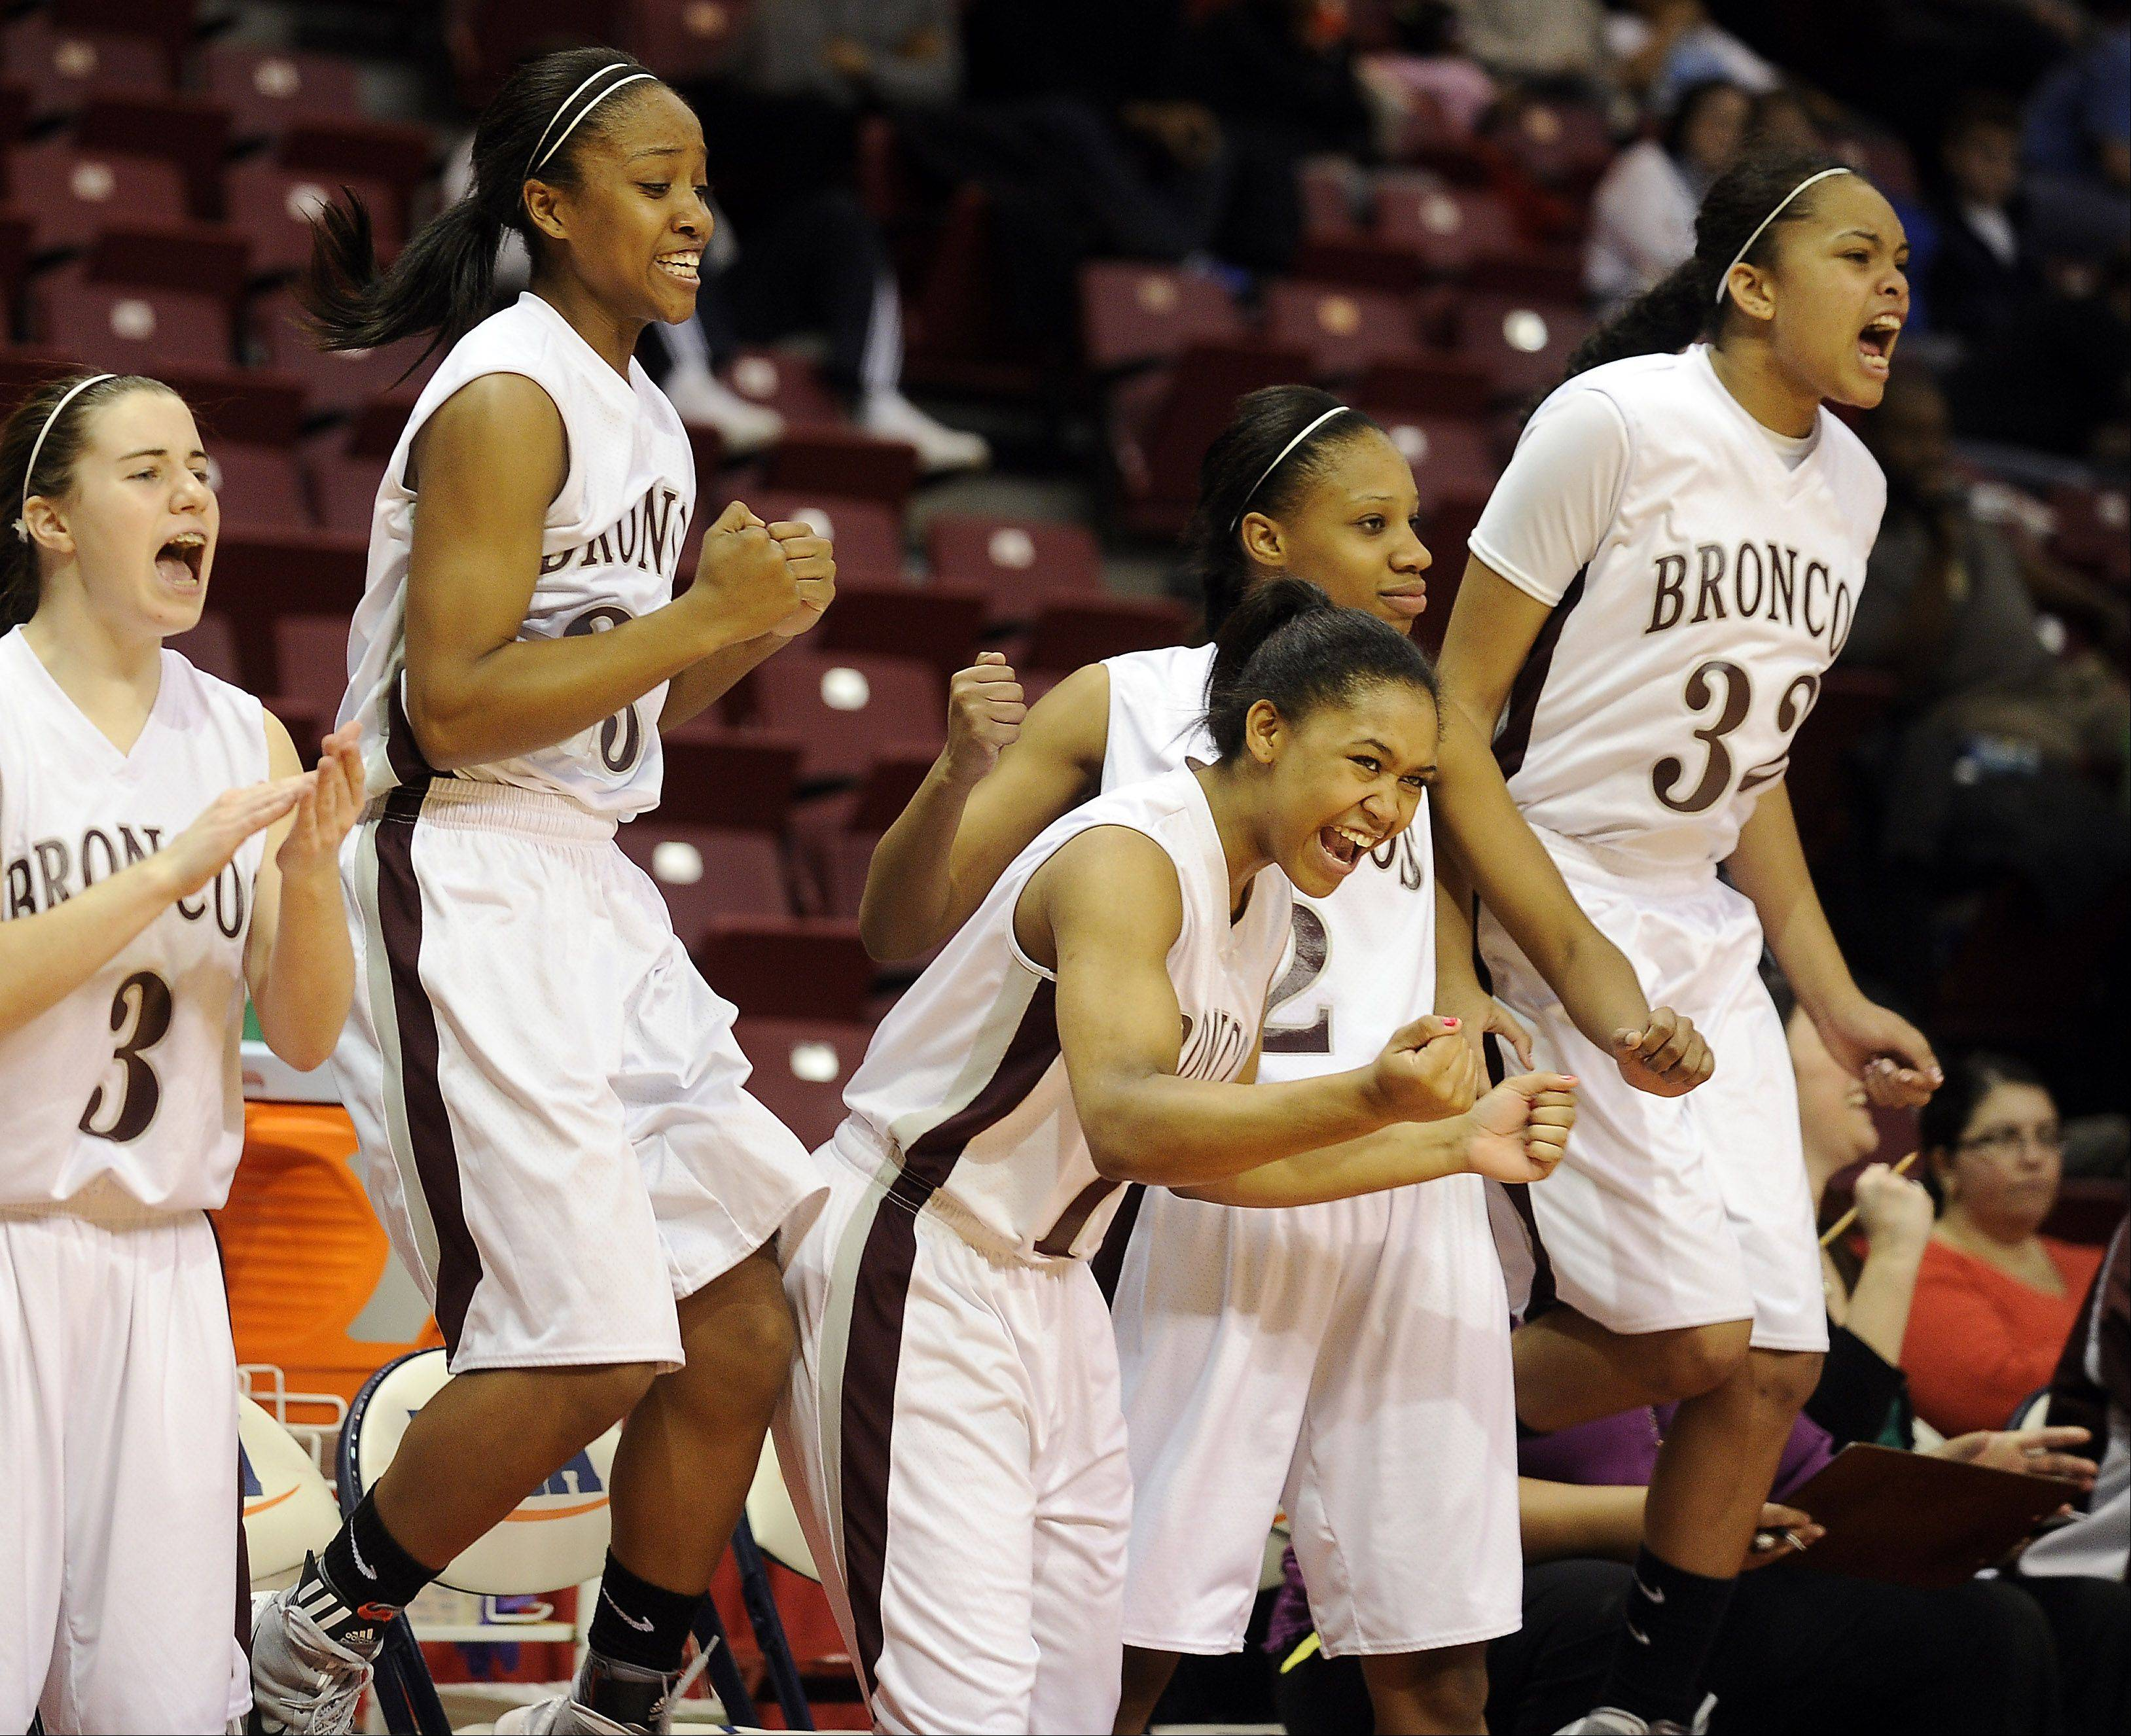 Images: Montini vs. Hillcrest, girls 3A state semifinal basketball